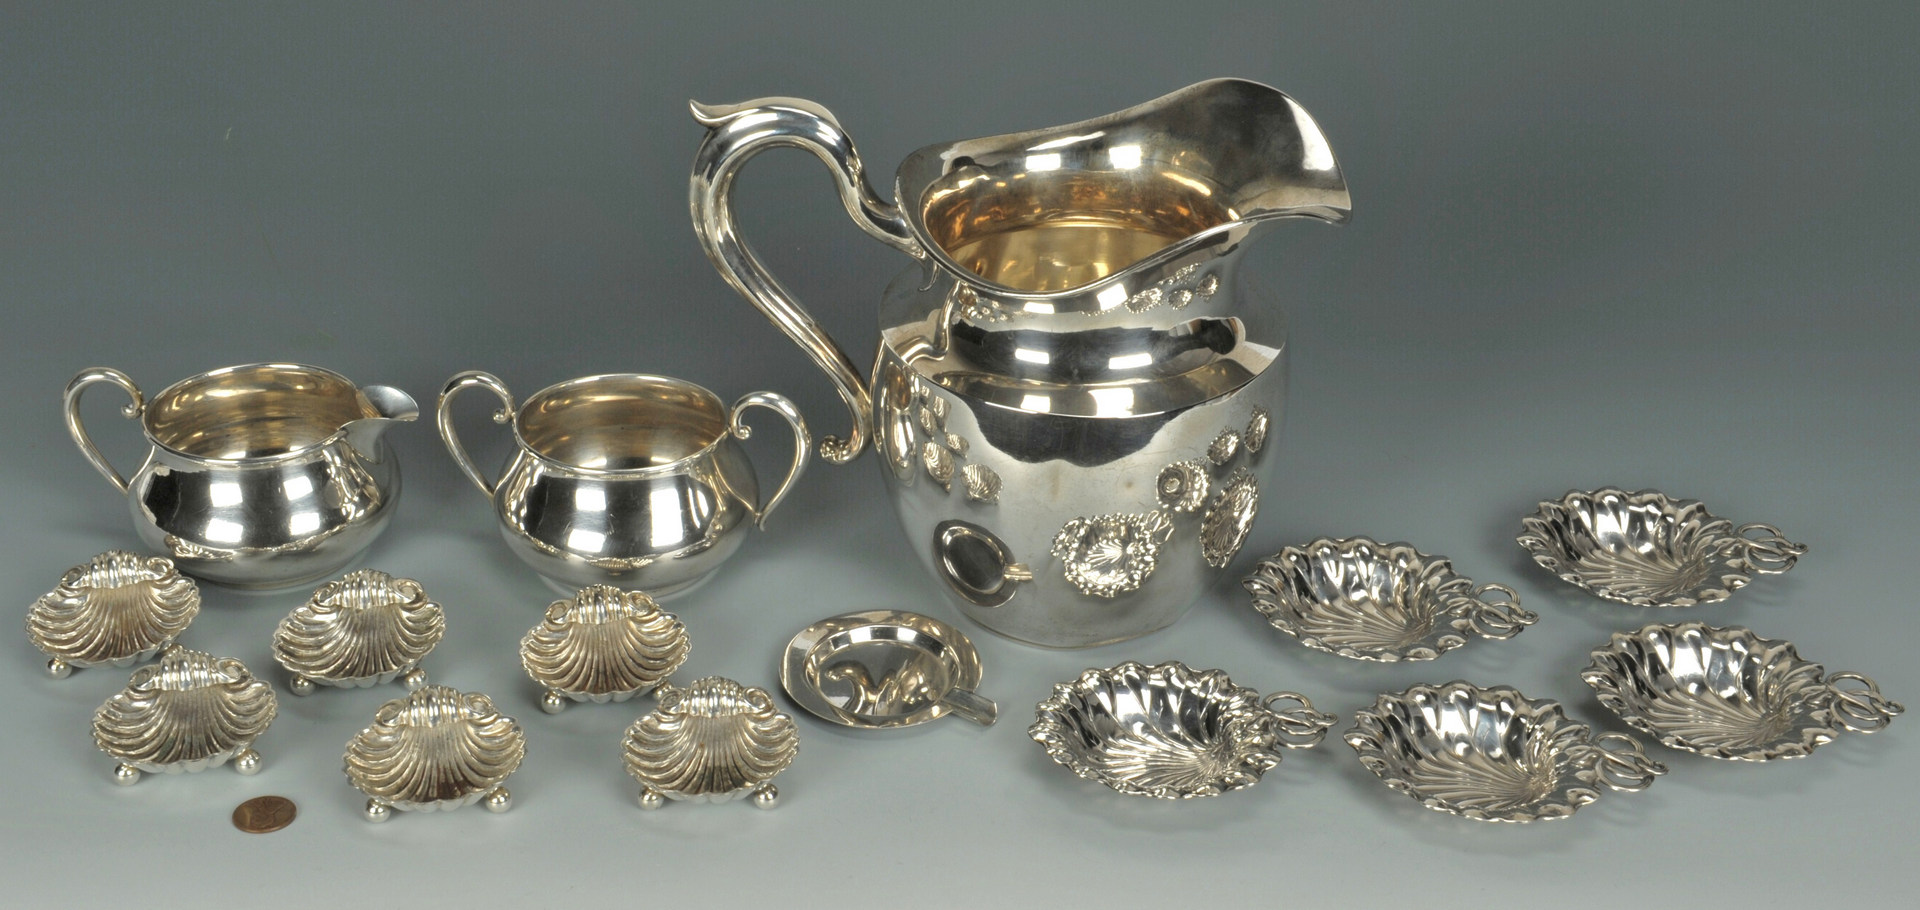 Lot 426: Sterling pitcher, creamer, sugar, small nut bowls